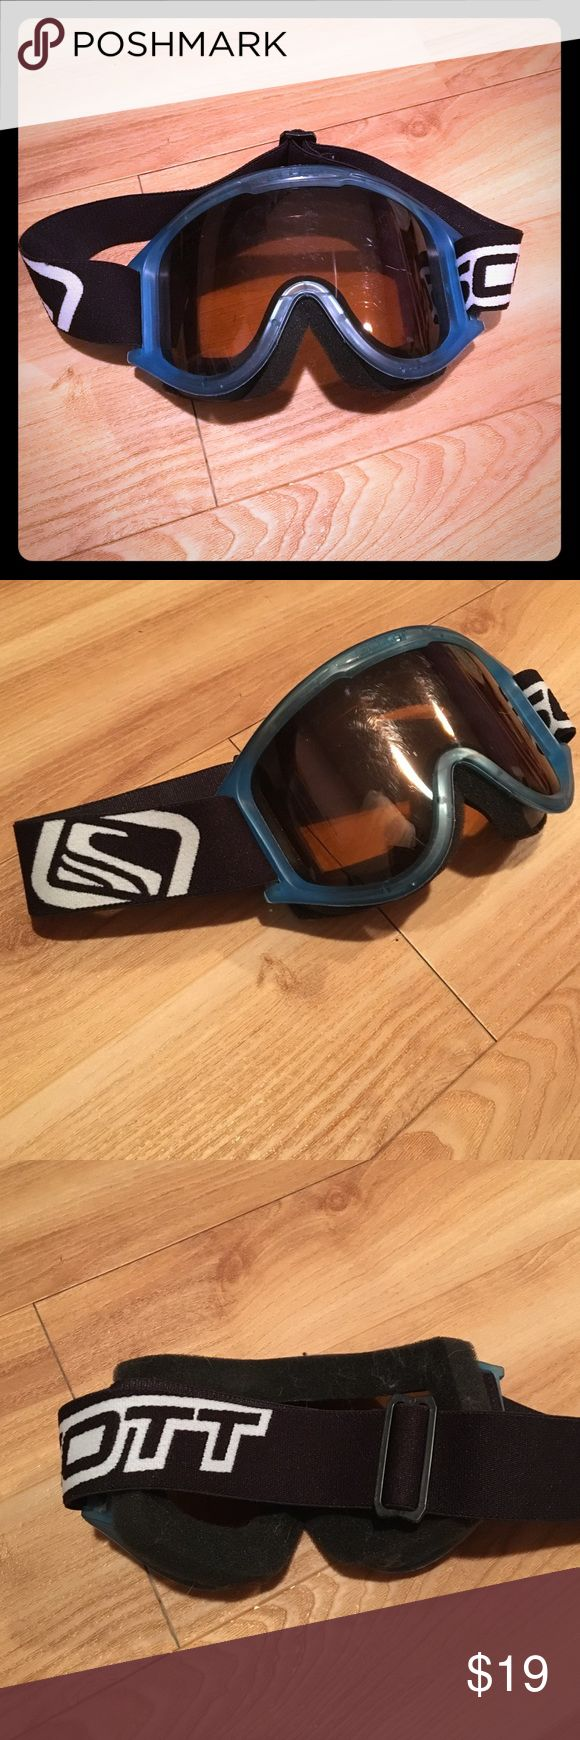 Scott Brand Snowboard Goggles Scott Brand Snowboard Goggles, a few scratches on lenses but overall great condition! Scott Other